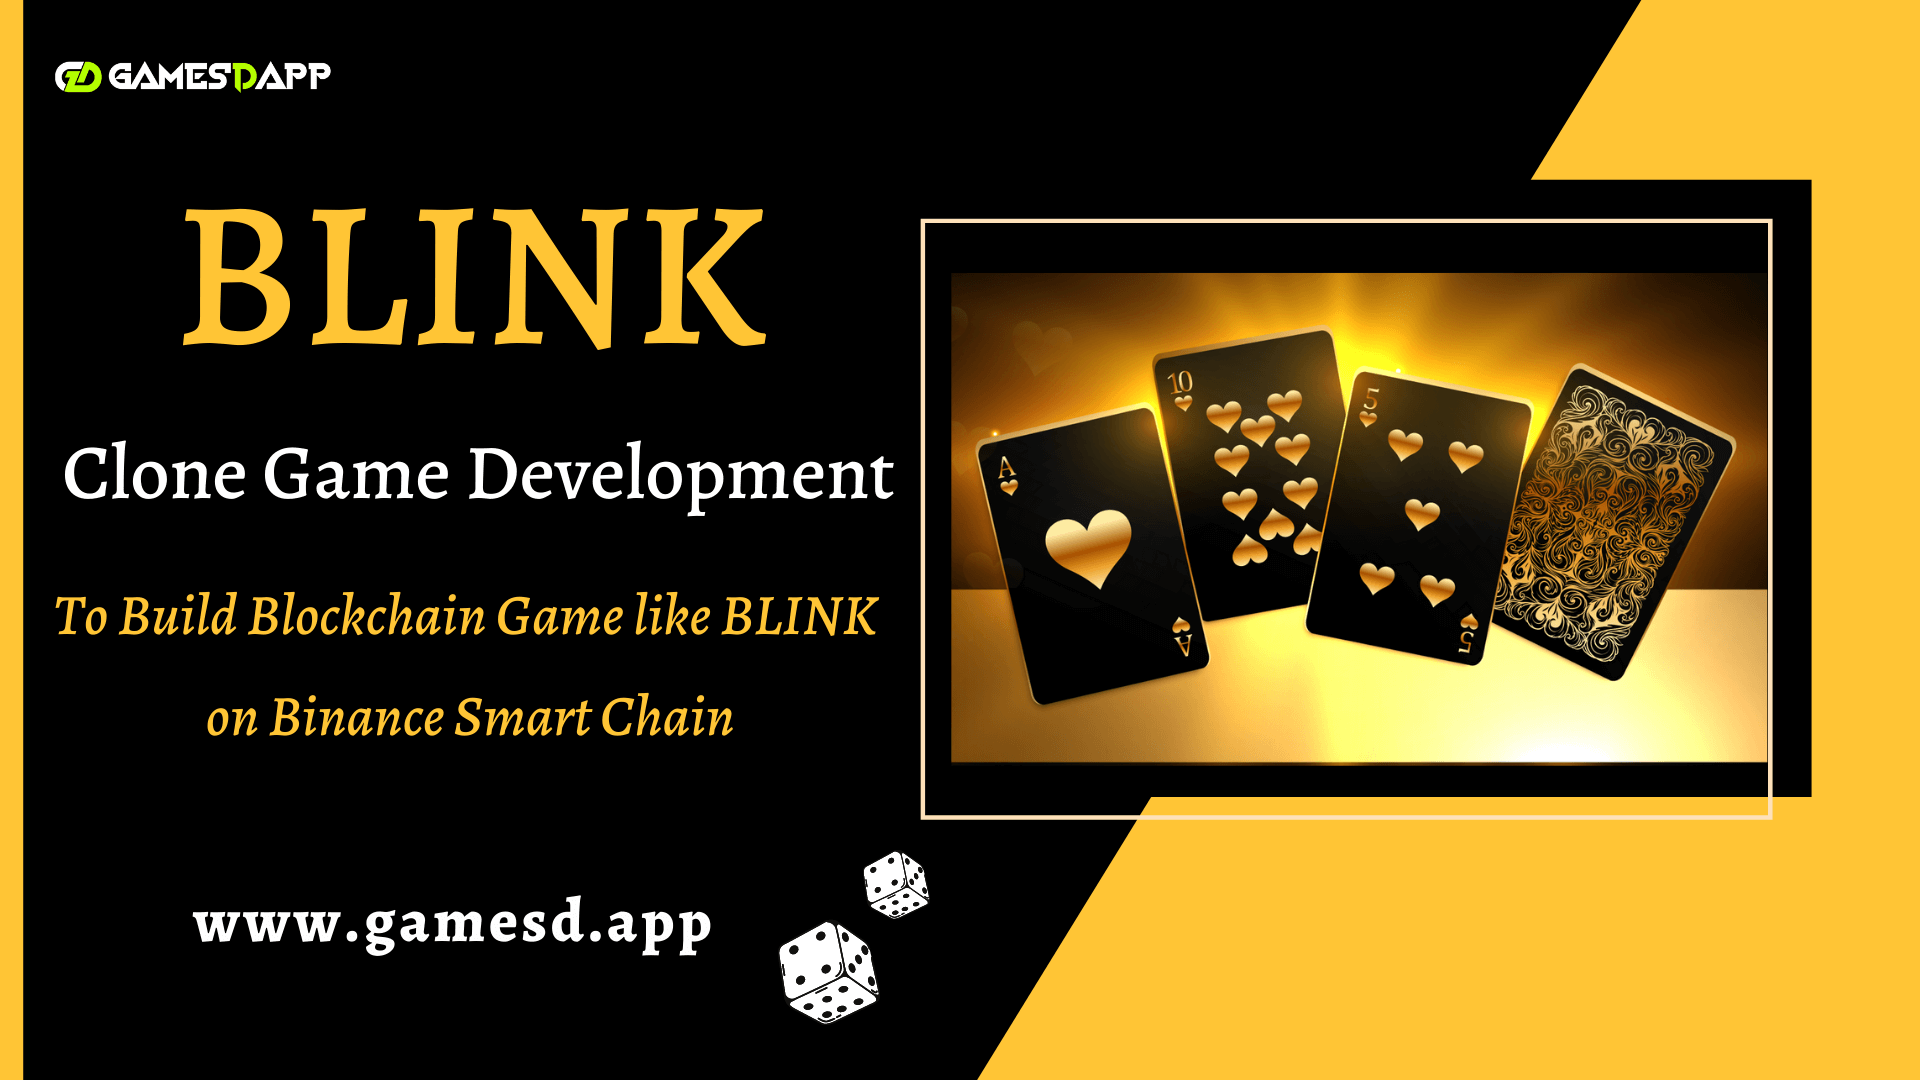 Blink Game Clone Development - To Build Blockchain Game Like Blink on Binance Smart Chain